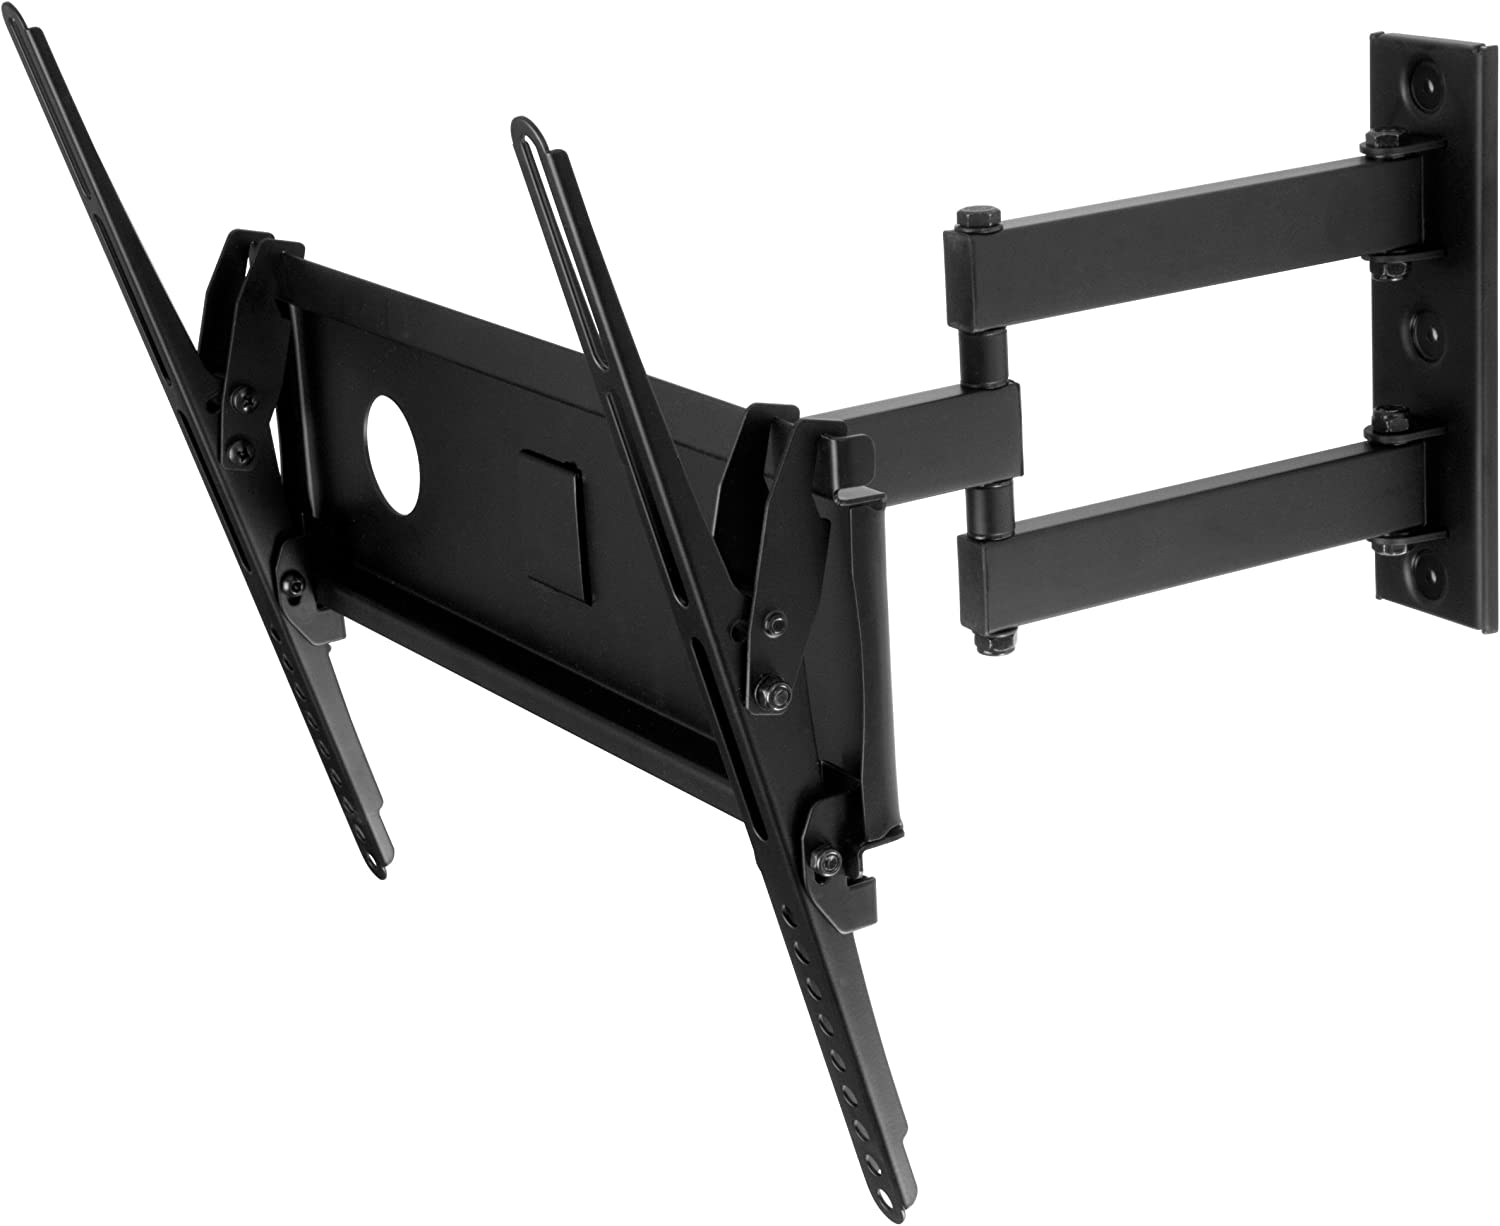 Swift Mount SWIFT440-AP Multi Position TV Wall Mount for 26-inch to 55-inch TVs,Black